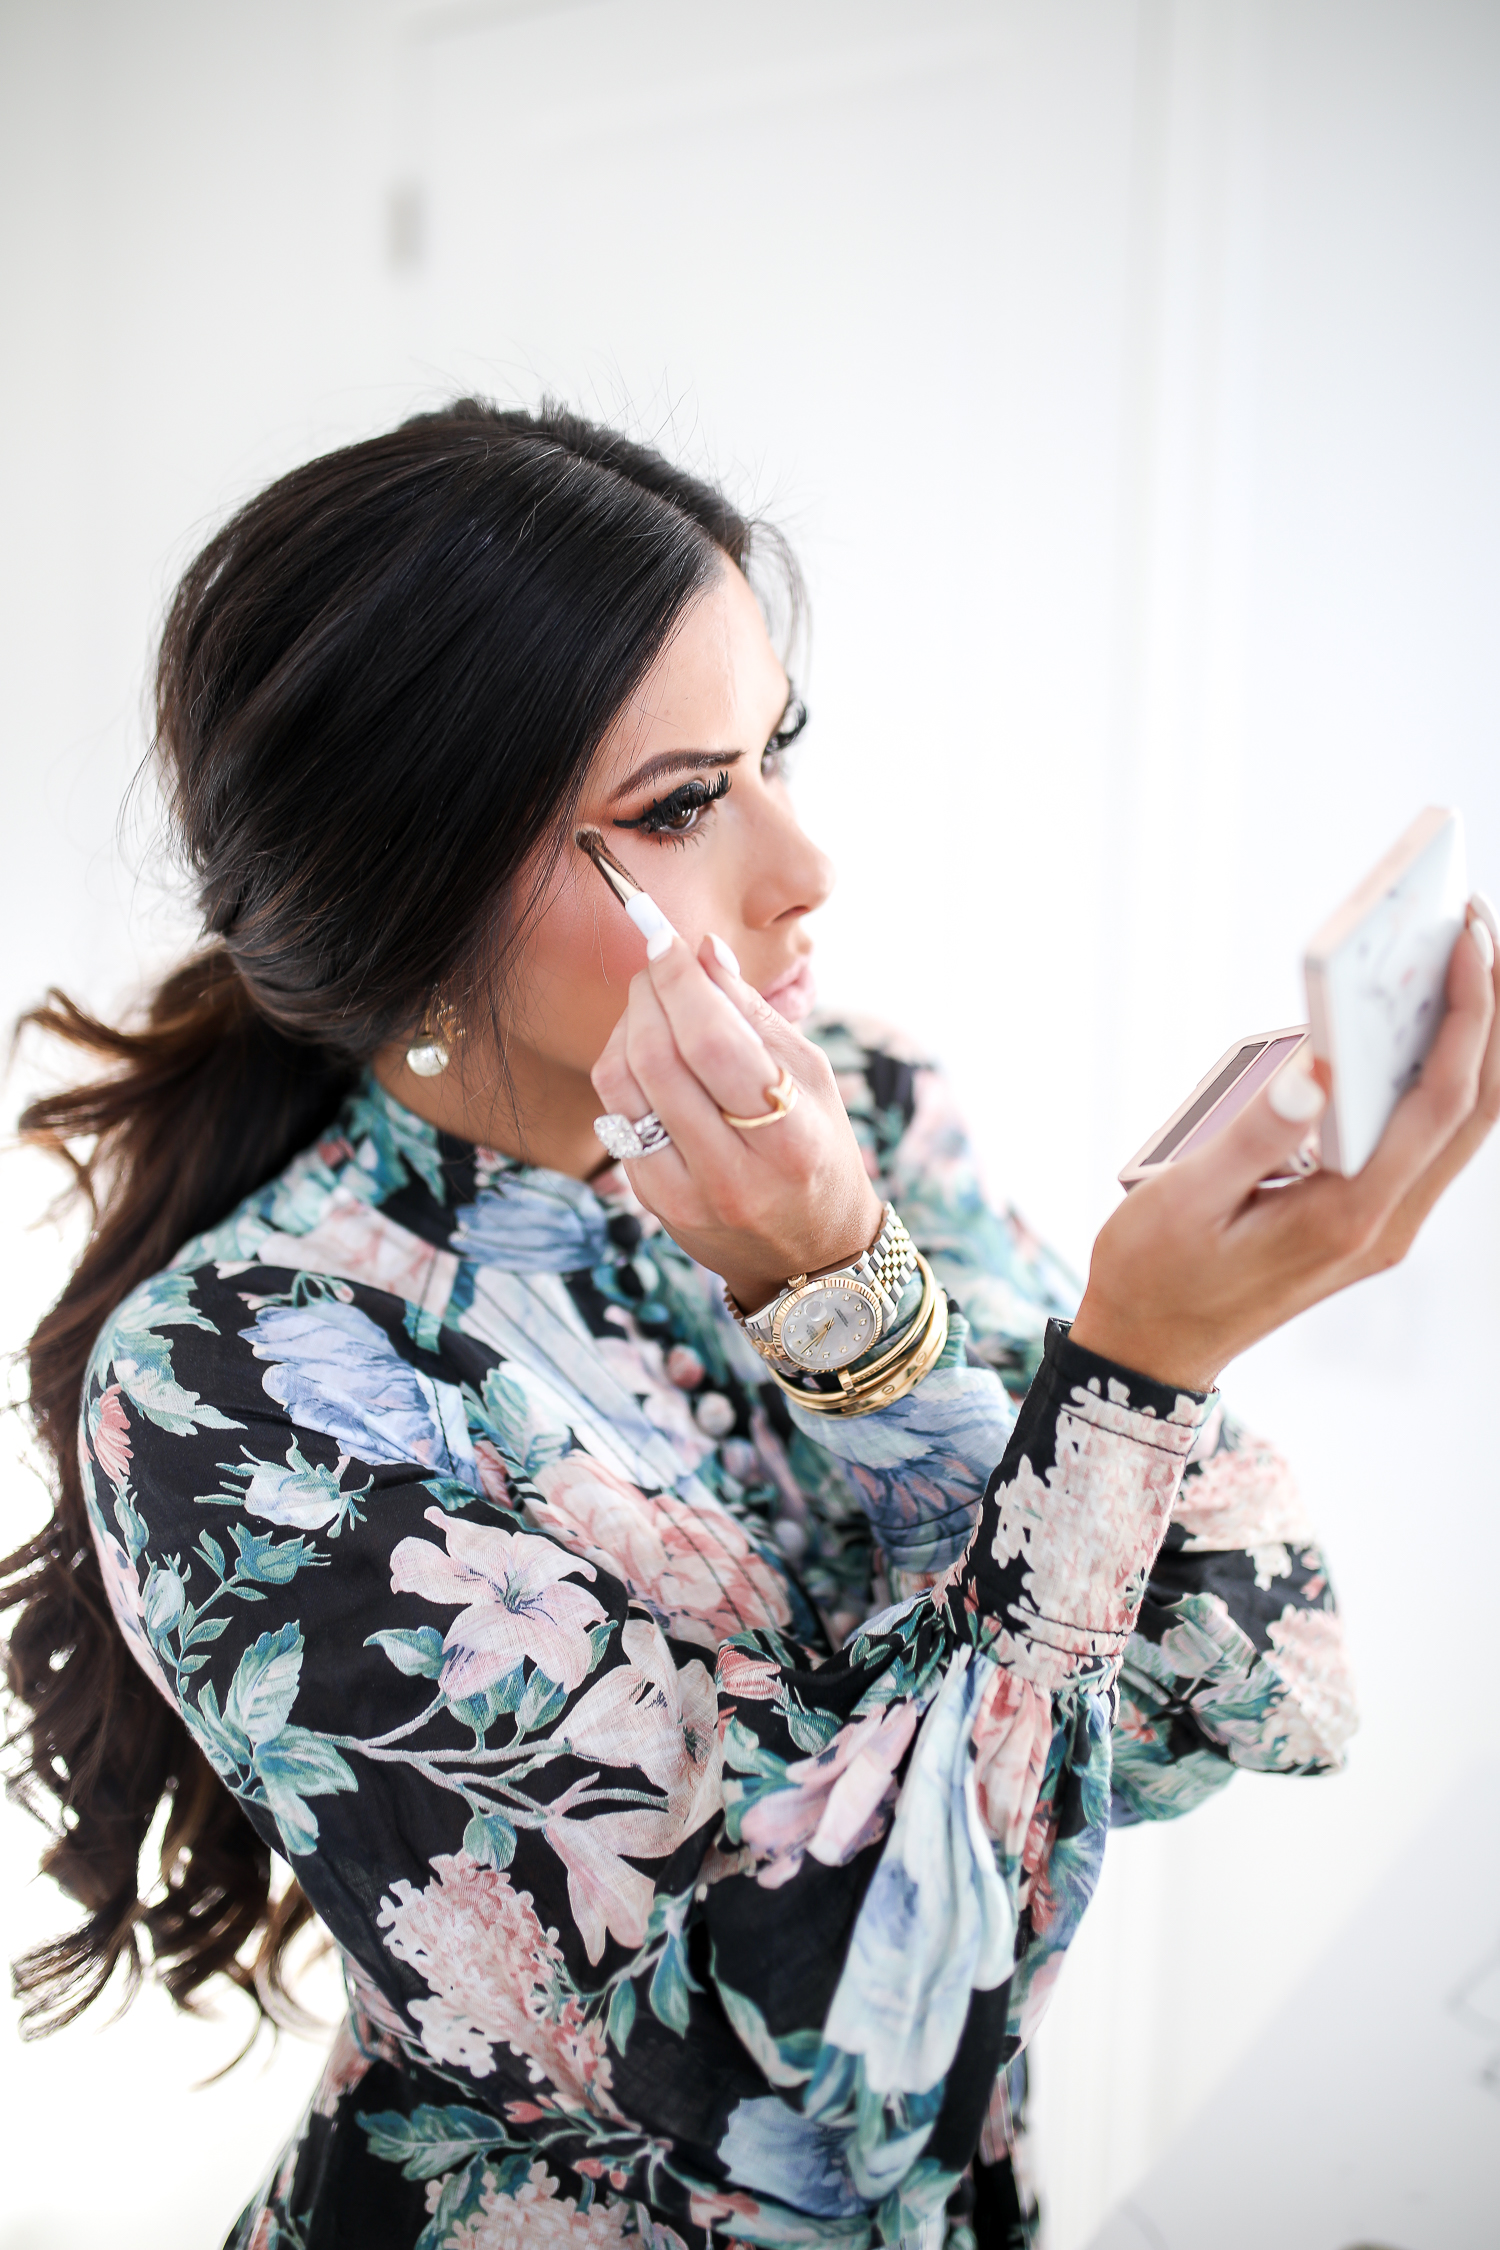 Estee Lauder Makeup by popular US beauty blog, The Sweetest Thing: image of a woman applying Estee Lauder Act IV makeup.